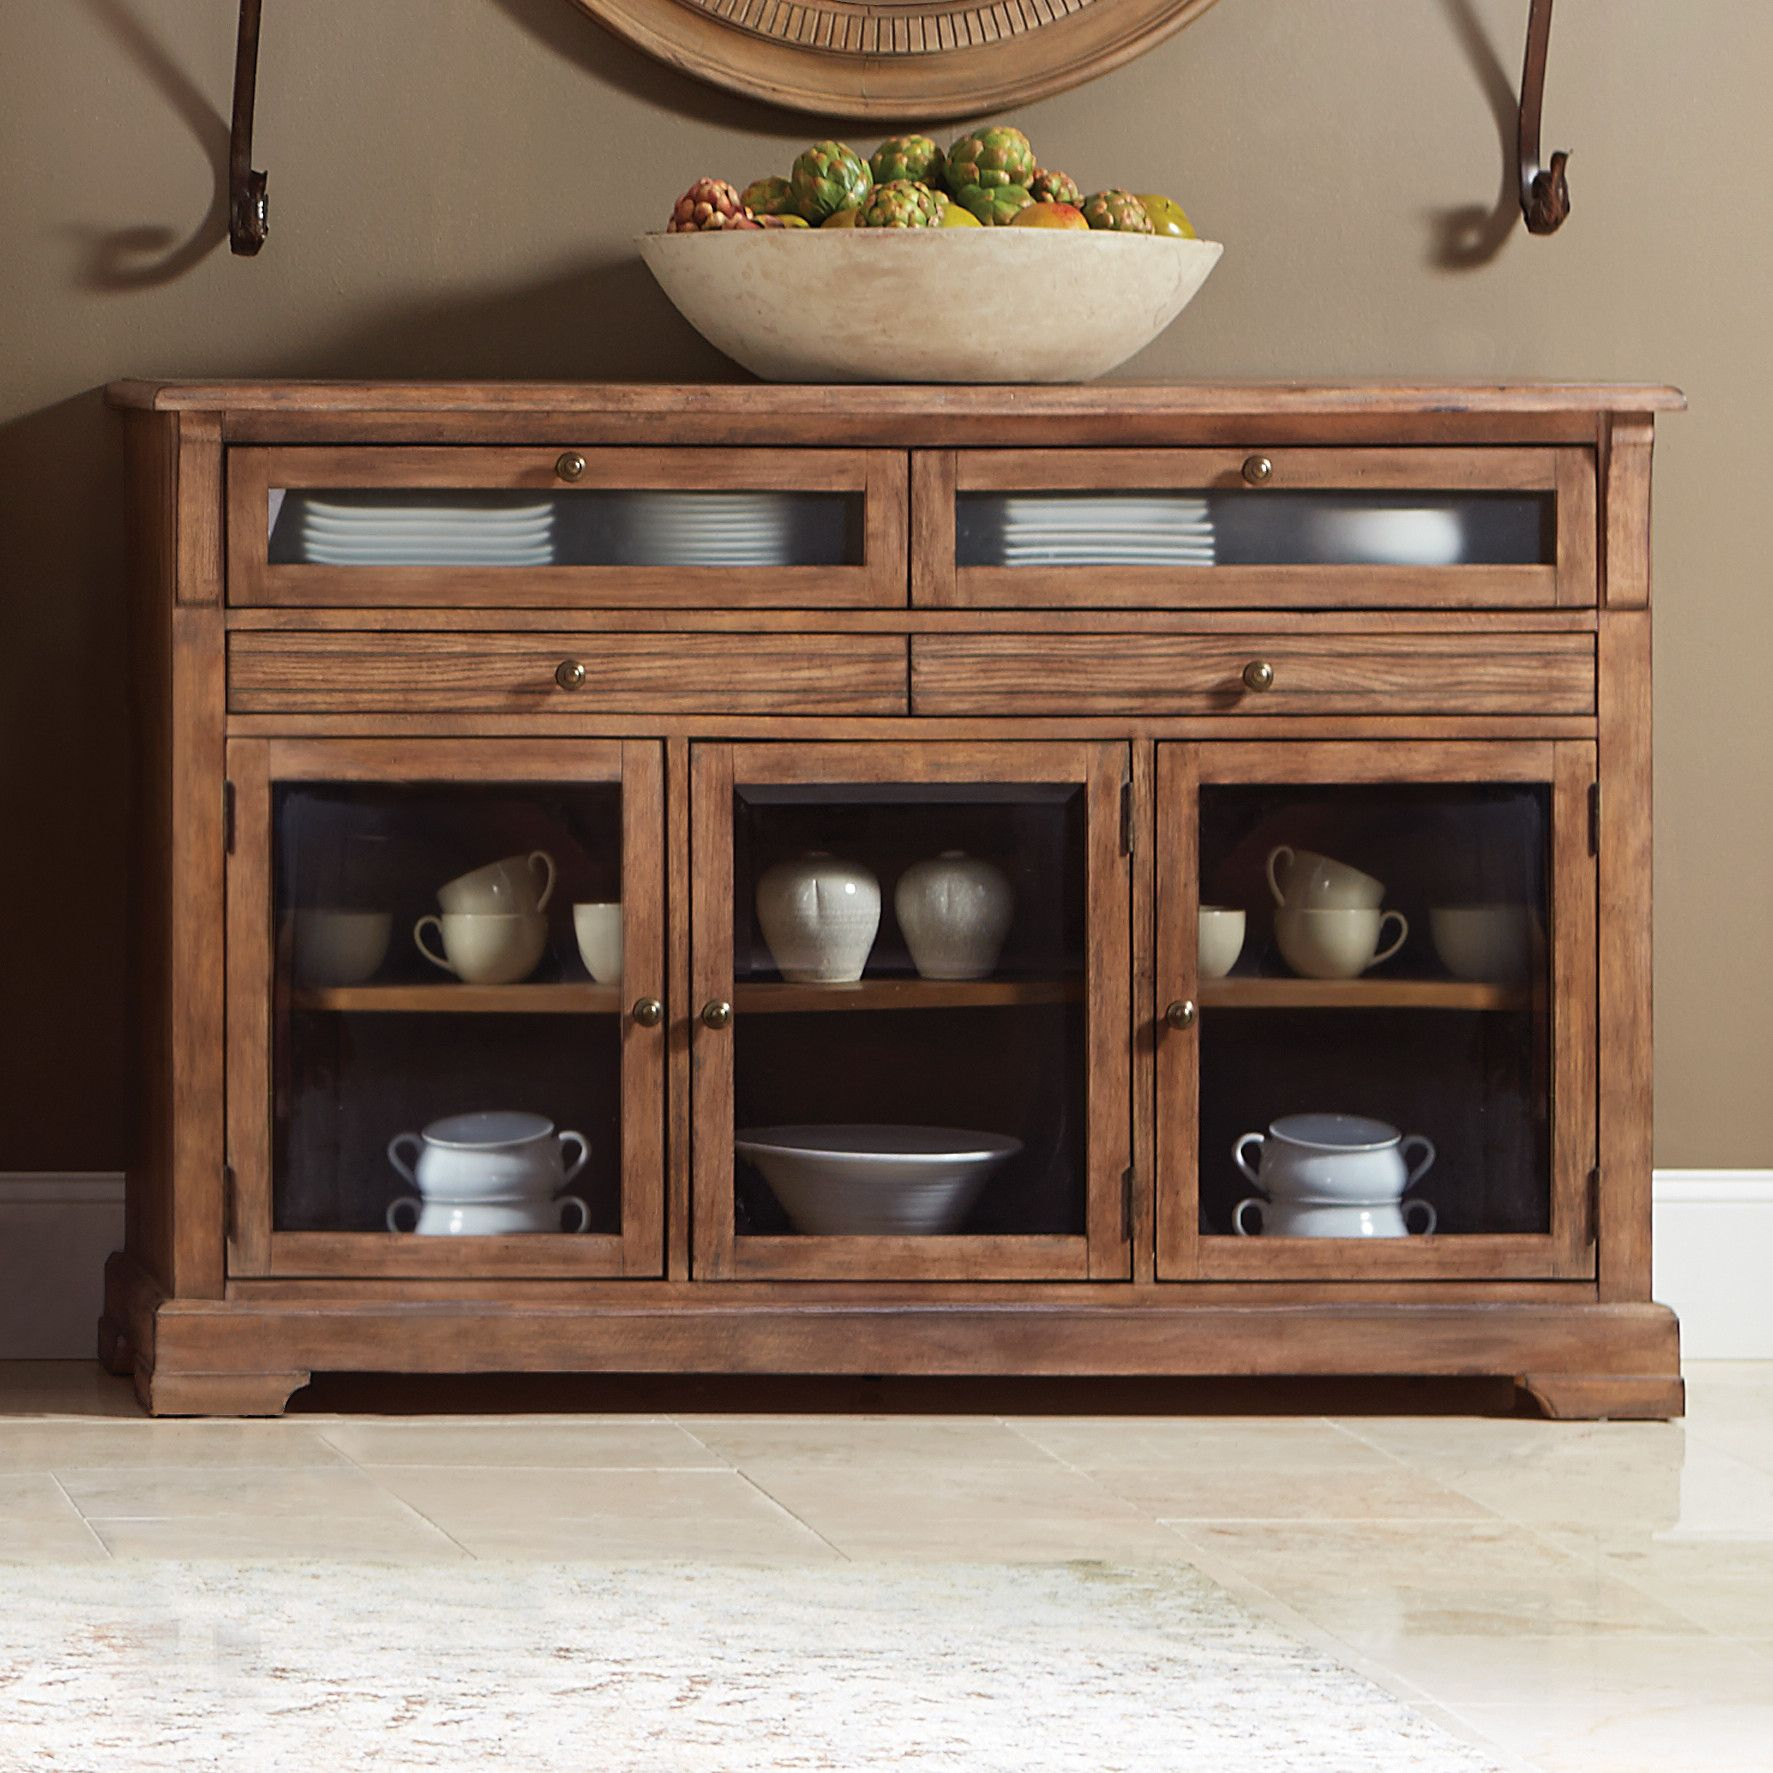 Sherborne Server | Products | Dining Room Server, Dining With Regard To Most Up To Date Chaffins Sideboards (#17 of 20)